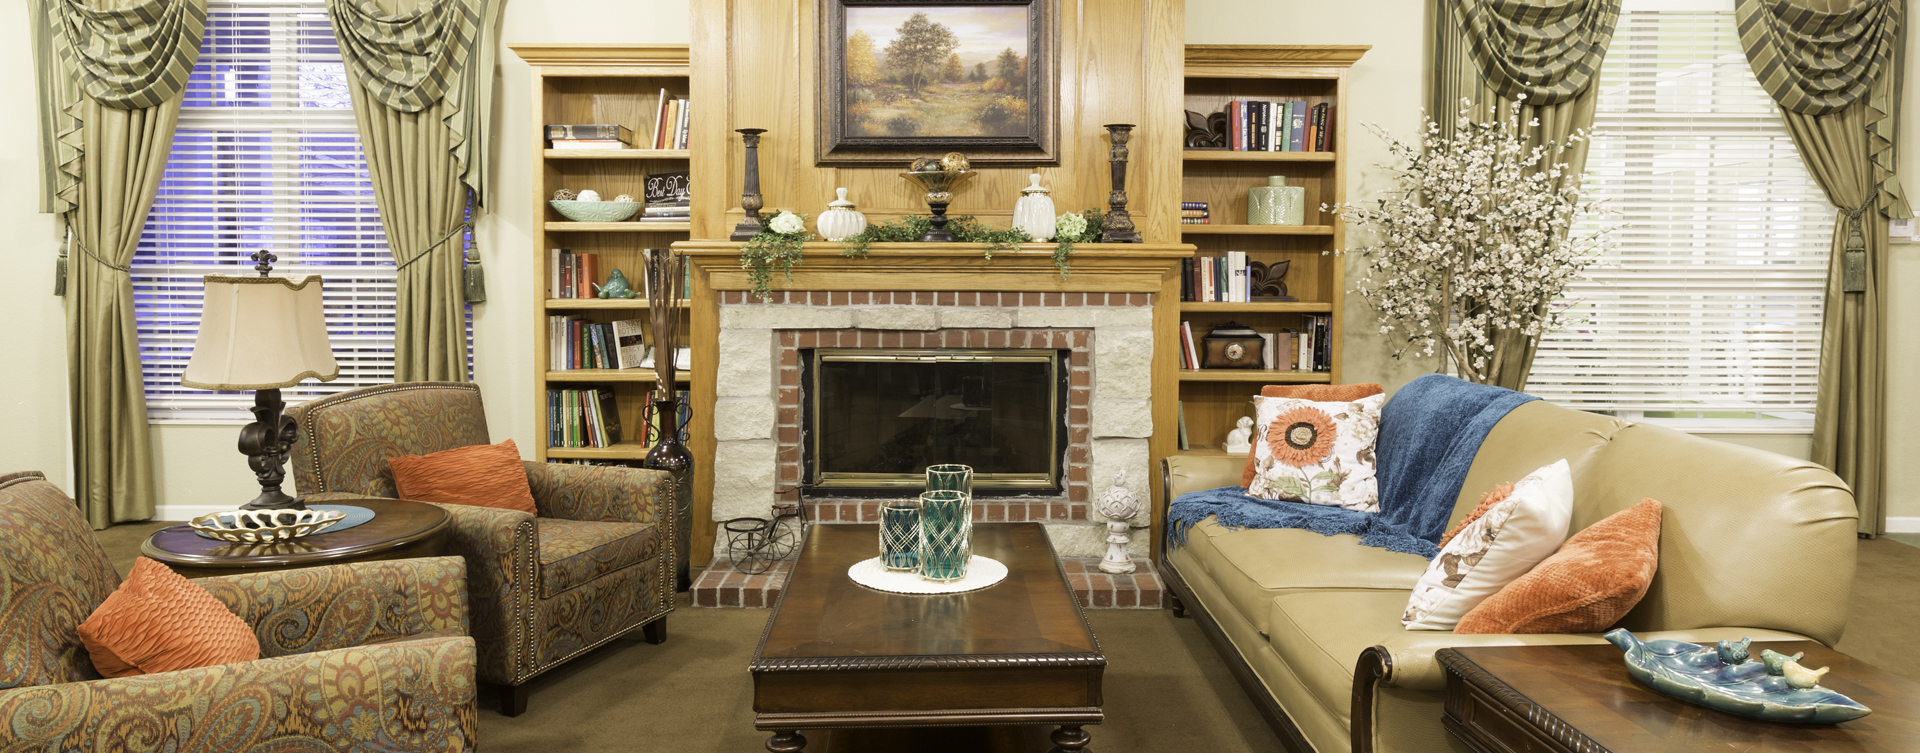 Socialize with friends in the living room at Bickford of Omaha - Hickory